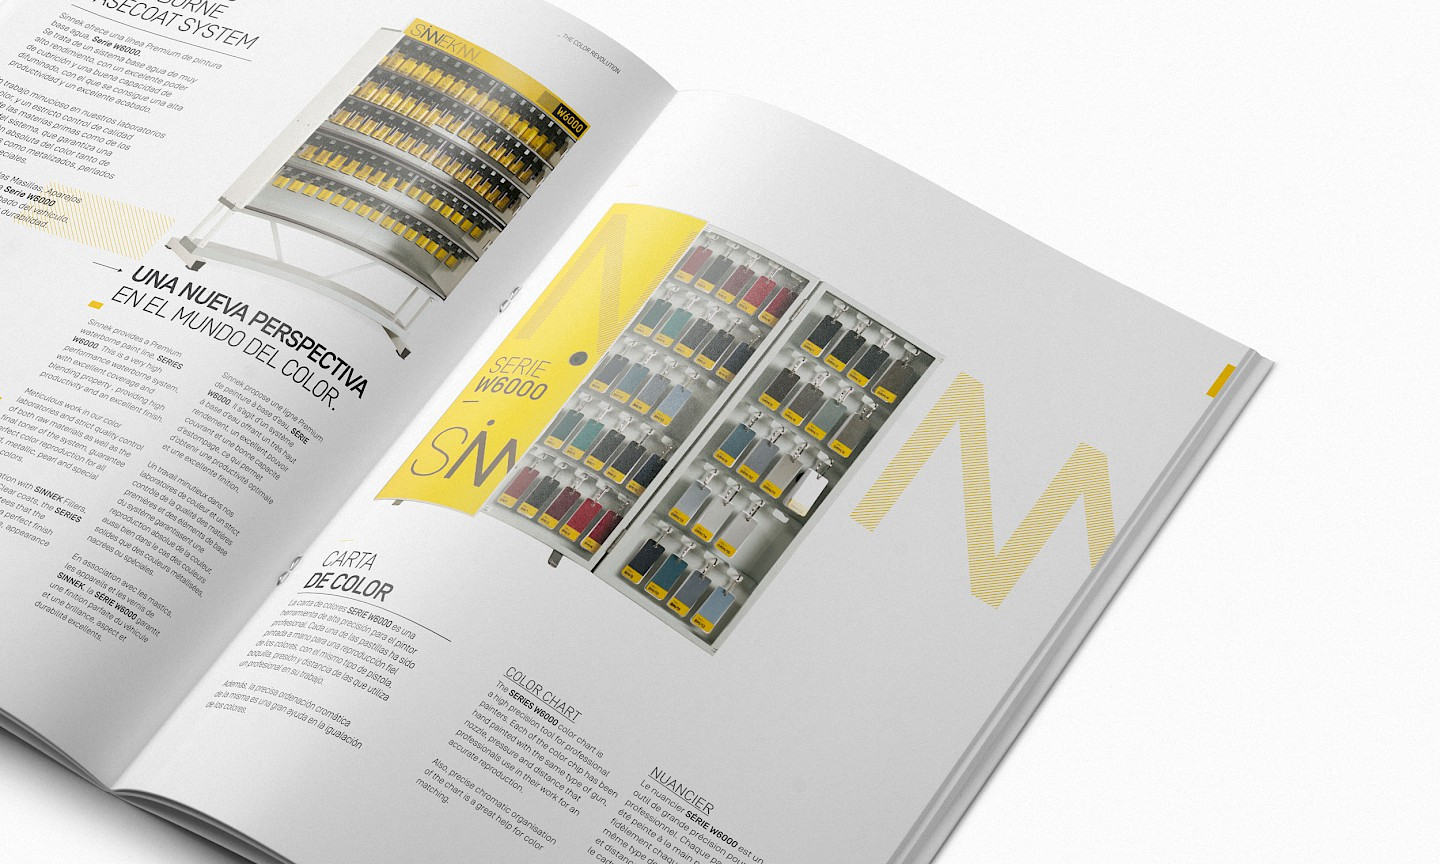 sinnek move catalogo03 branding